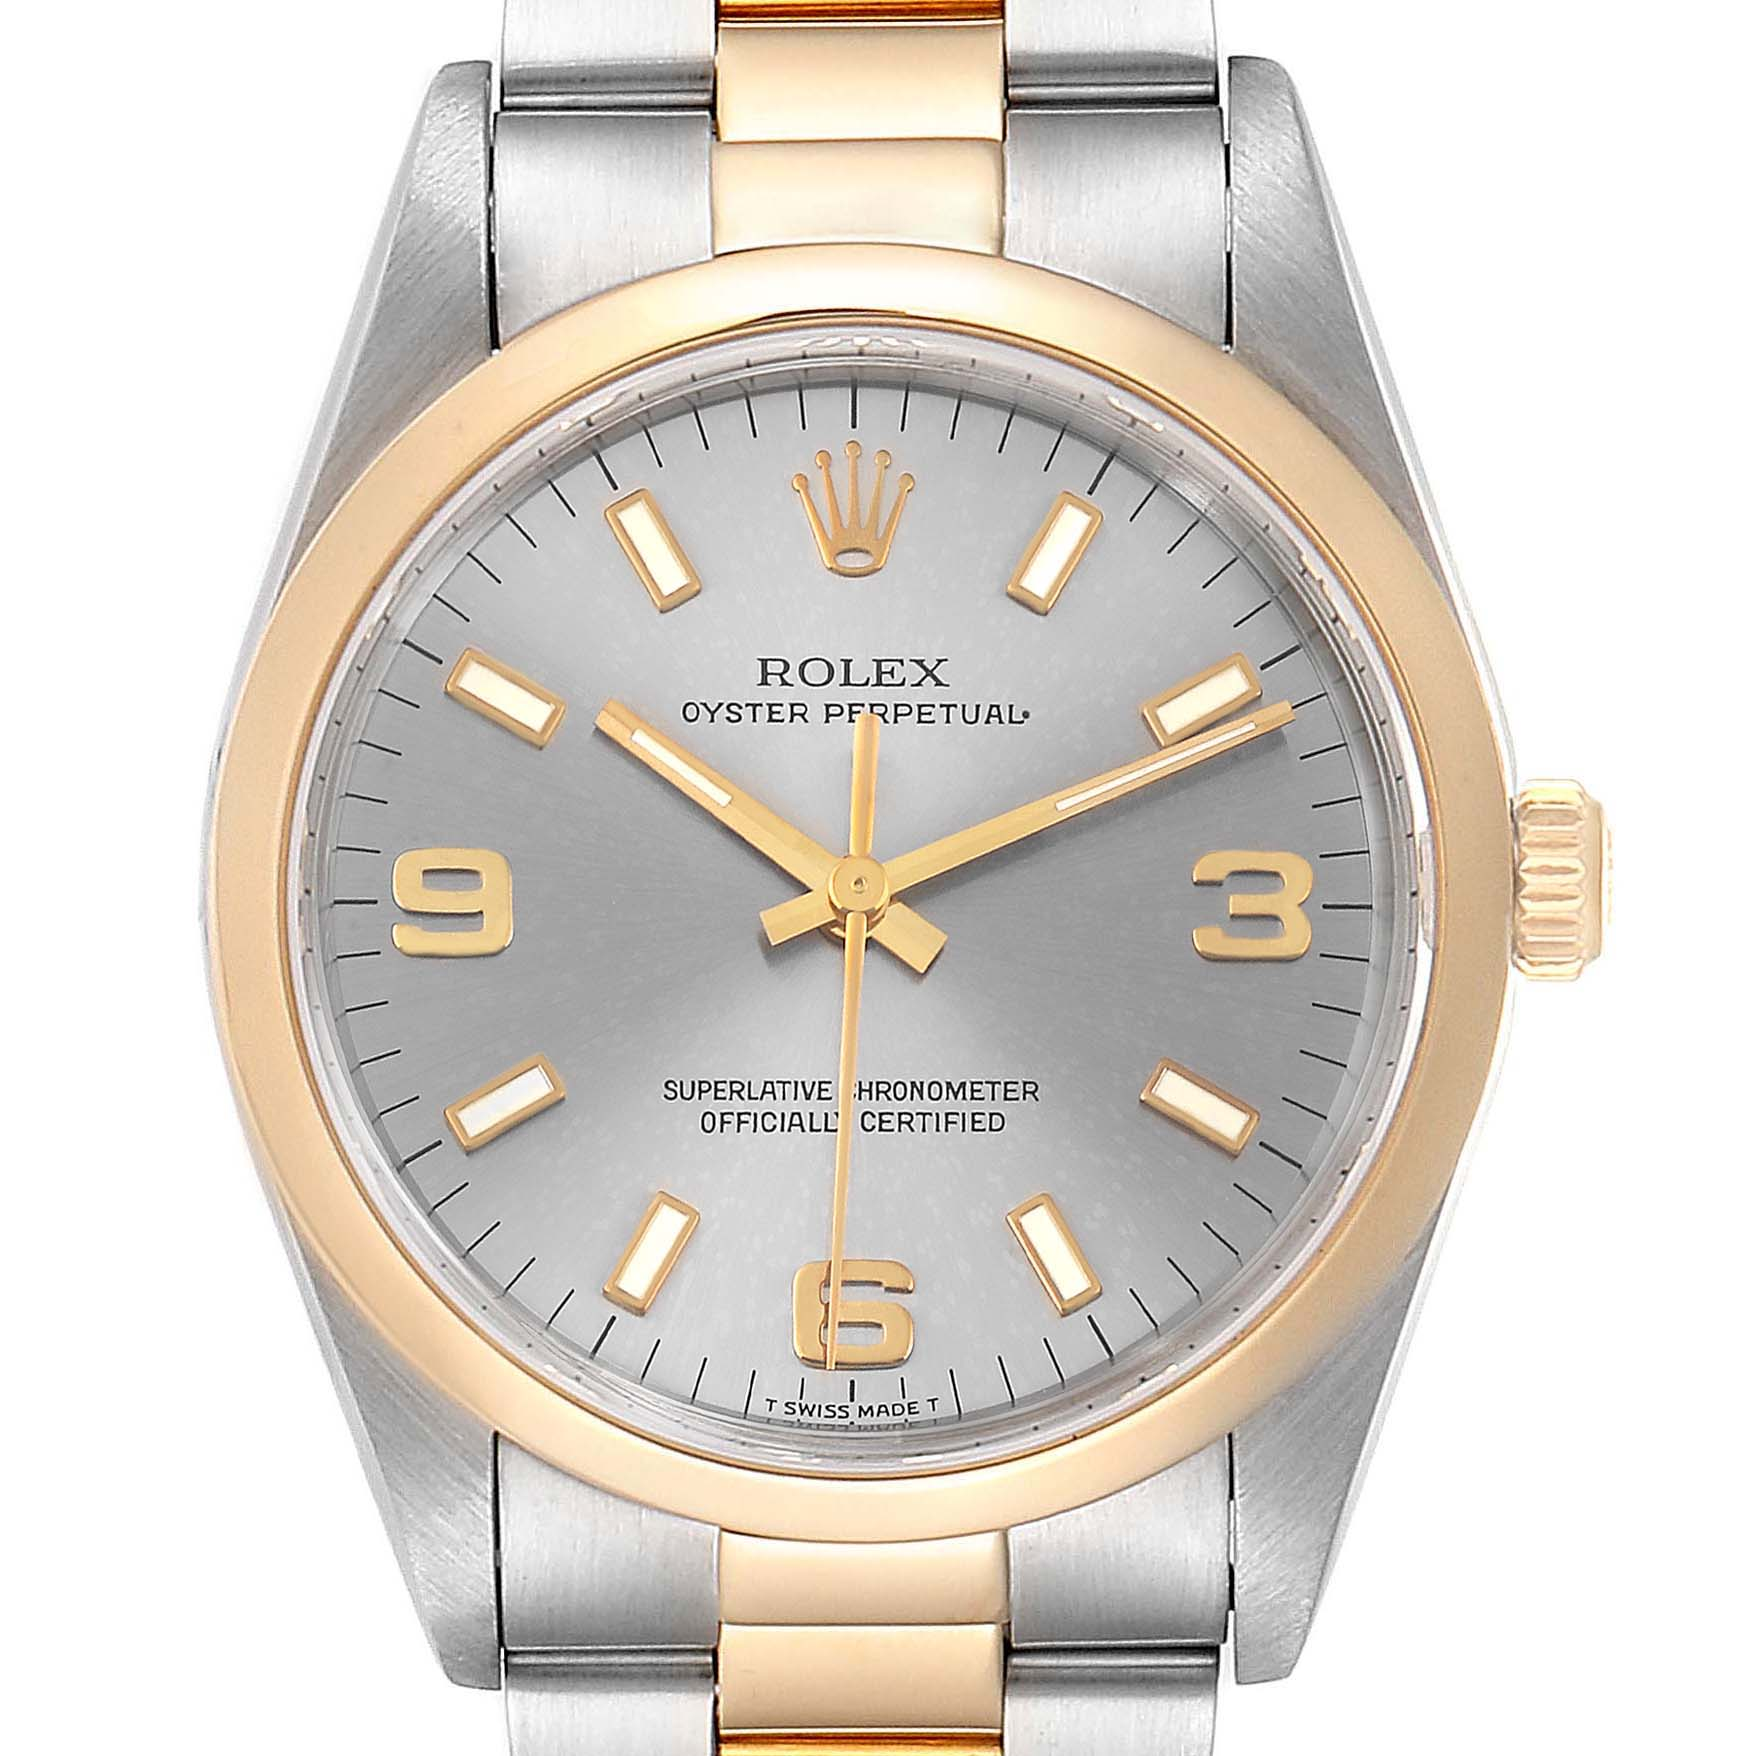 Rolex Oyster Perpetual Domed Bezel Steel Yellow Gold Mens Watch 14203